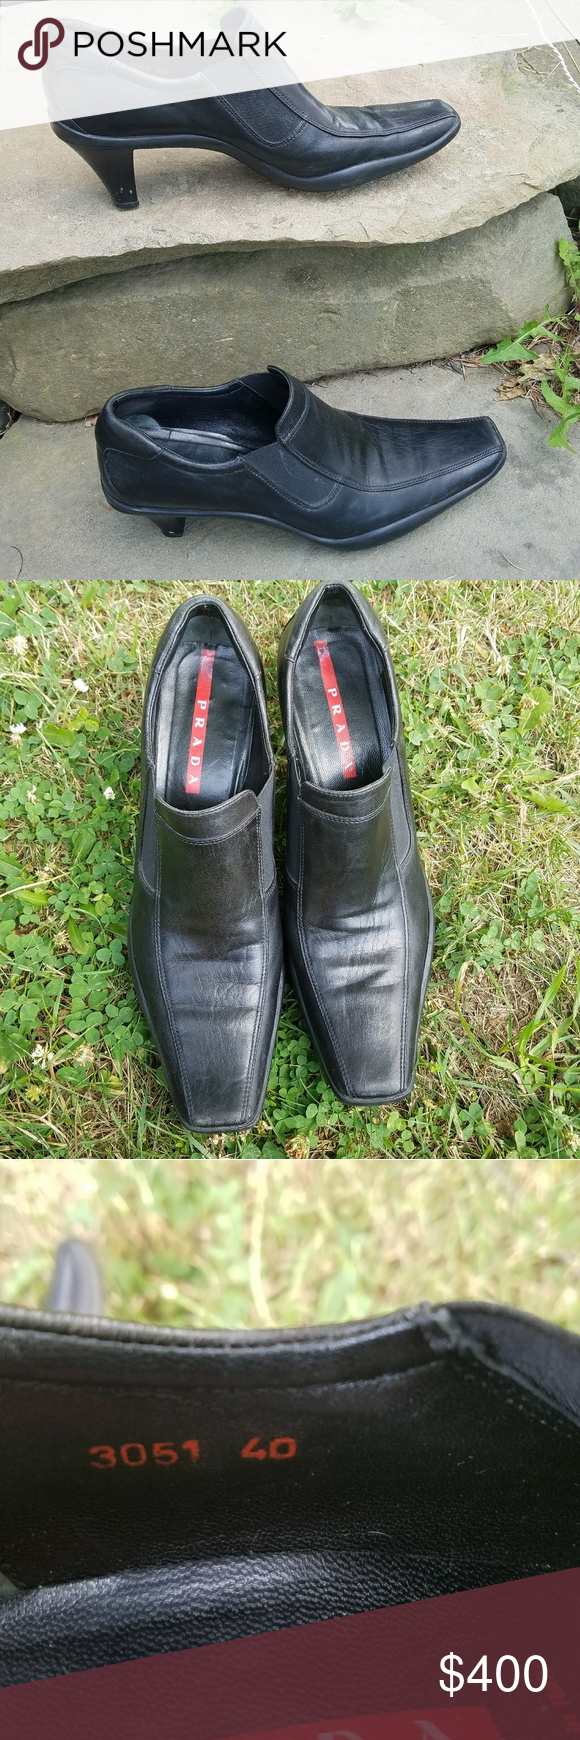 """Prada Square Toe Nappa Sport Booties 2.5"""" heel Authentic leather made in Italy. Prada Linea Rossa. GUC with some creasing and minor scuffs as shown in photo. Box not included. EU size 40. Best for a U.S. size 9 or 9.5.  Offers considered No trades Prada Shoes Ankle Boots & Booties"""